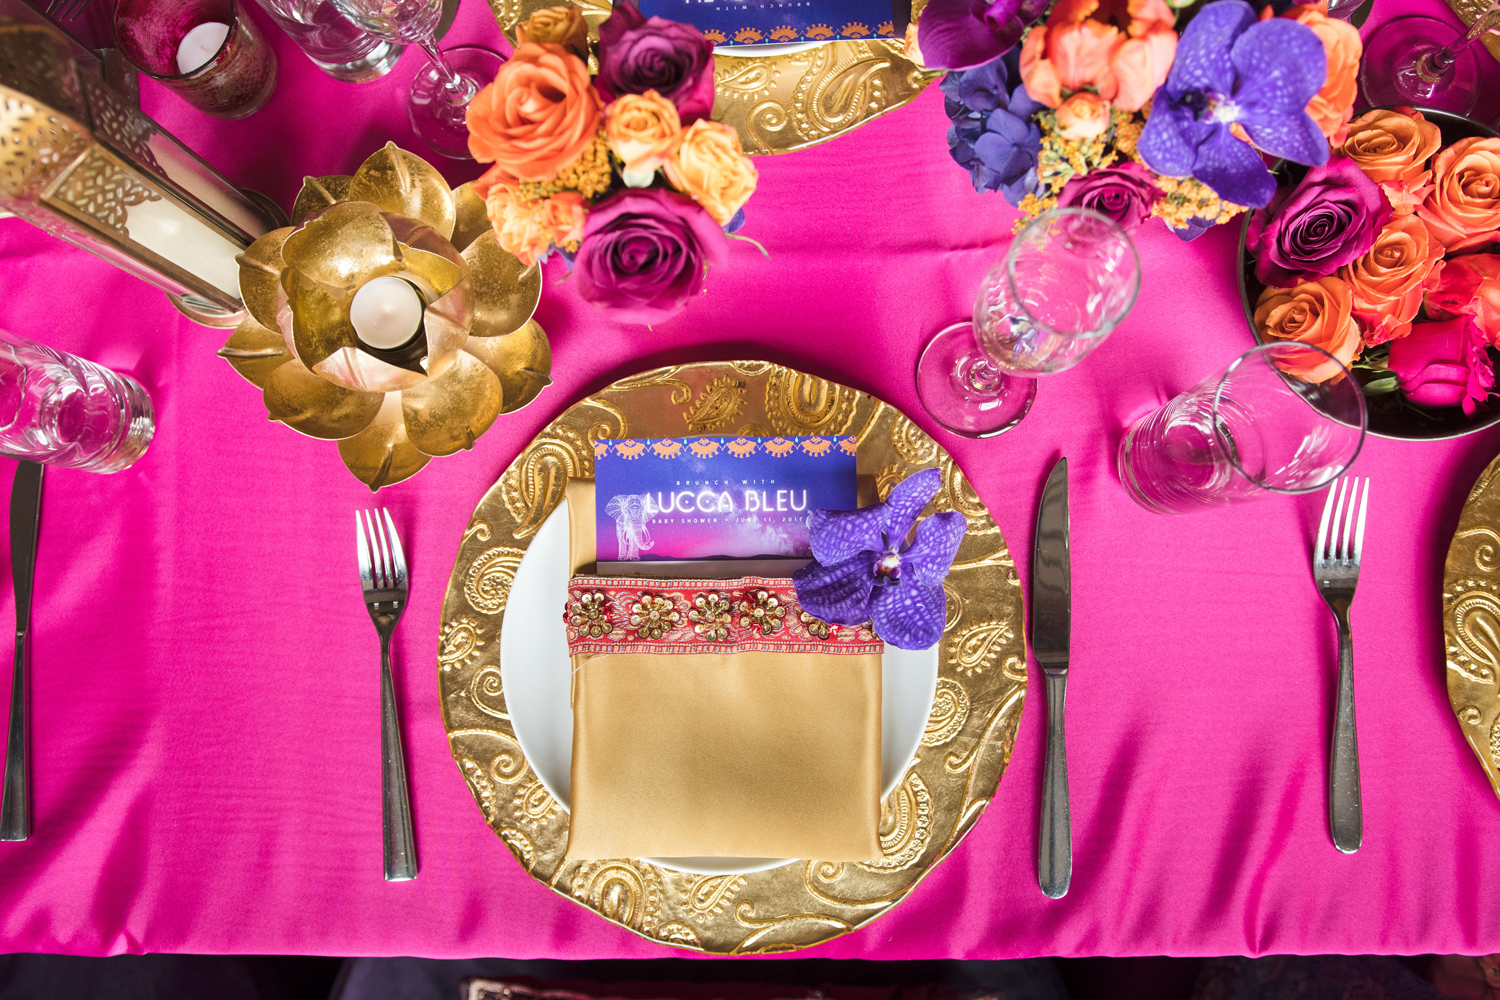 Moroccan Inspired Baby Shower Party custom napkins were at eat place setting.jpg